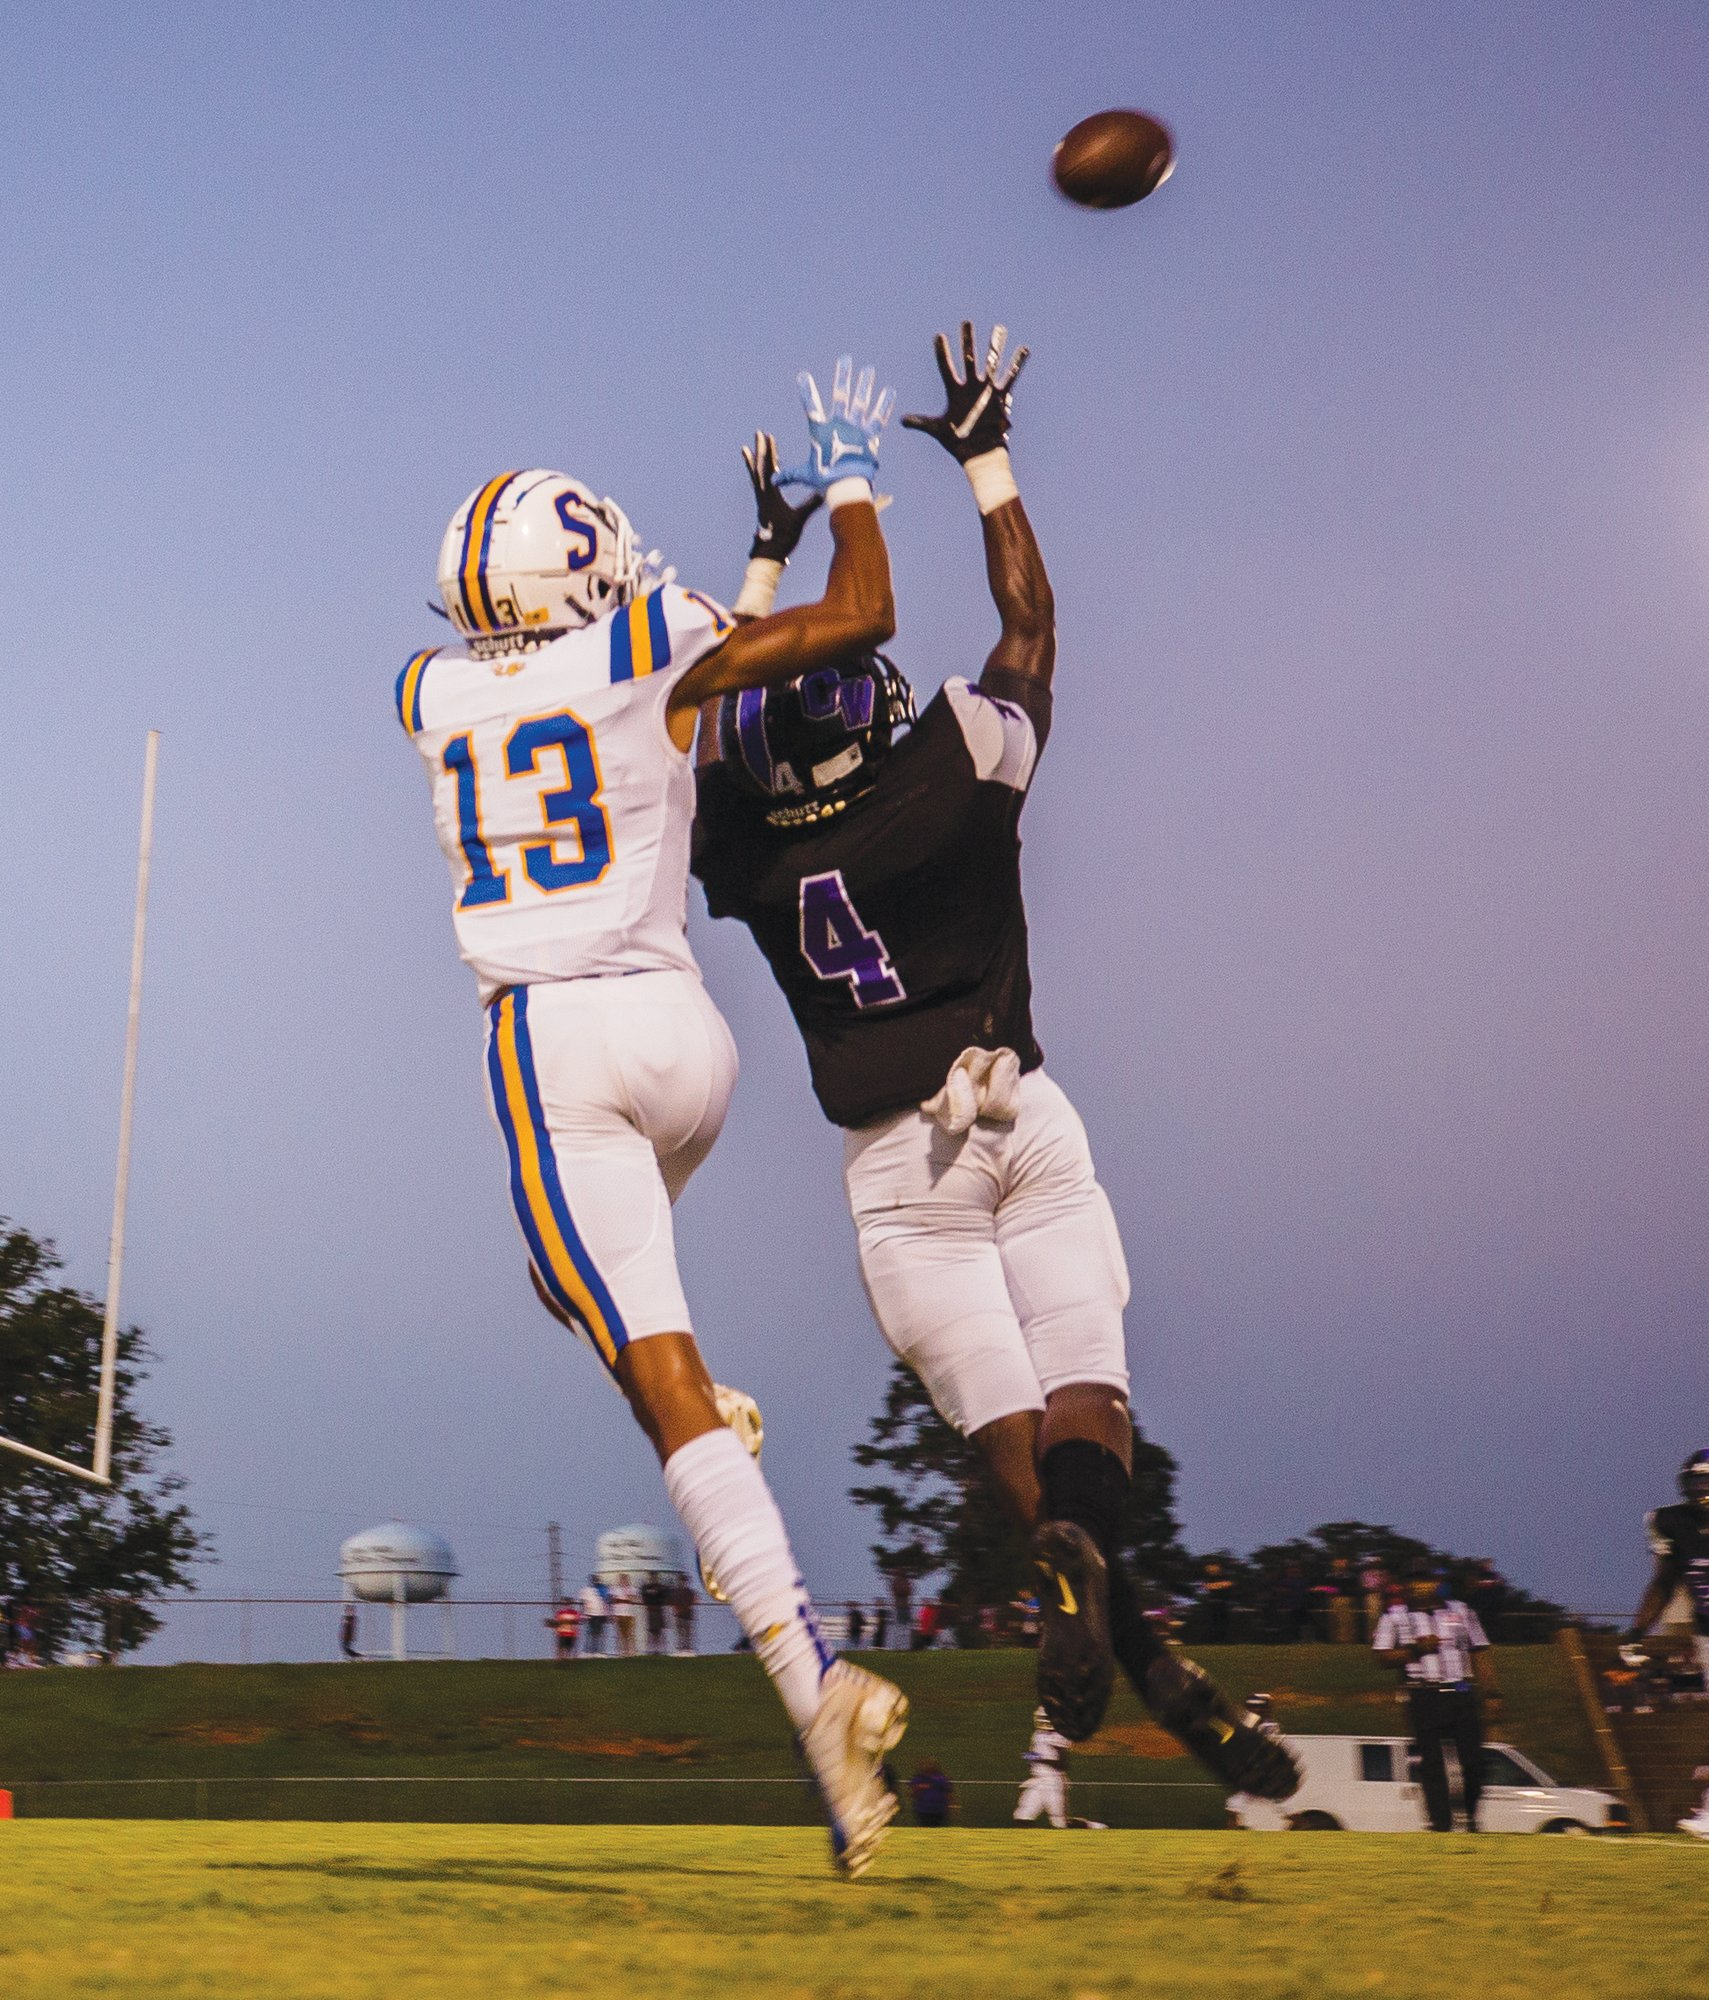 Sumter wide receiver Tylee Craft (13) goes up to make a catch over Crestwood defensive back Quinton Harrison in the Gamecock's 63-2 victory on Friday in Dalzell. Sumter's home game against Conway scheduled for Friday was canceled, but Crestwood is still scheduled to play at Richland Northeast.